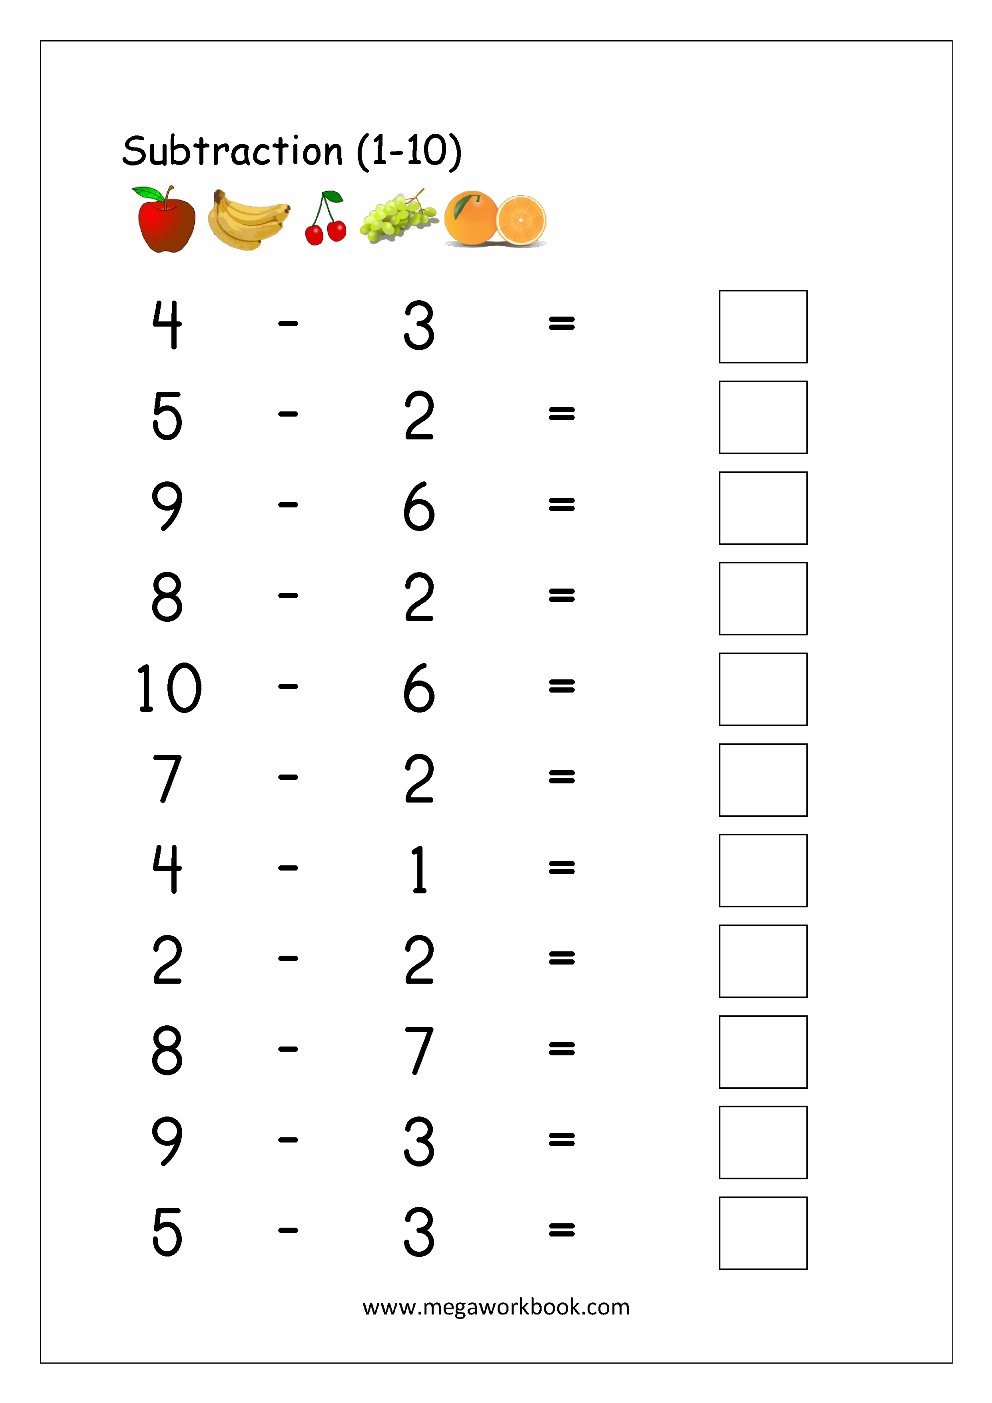 Subtraction From 10 Worksheet mixed problems worksheets mixed – Subtraction to 10 Worksheets